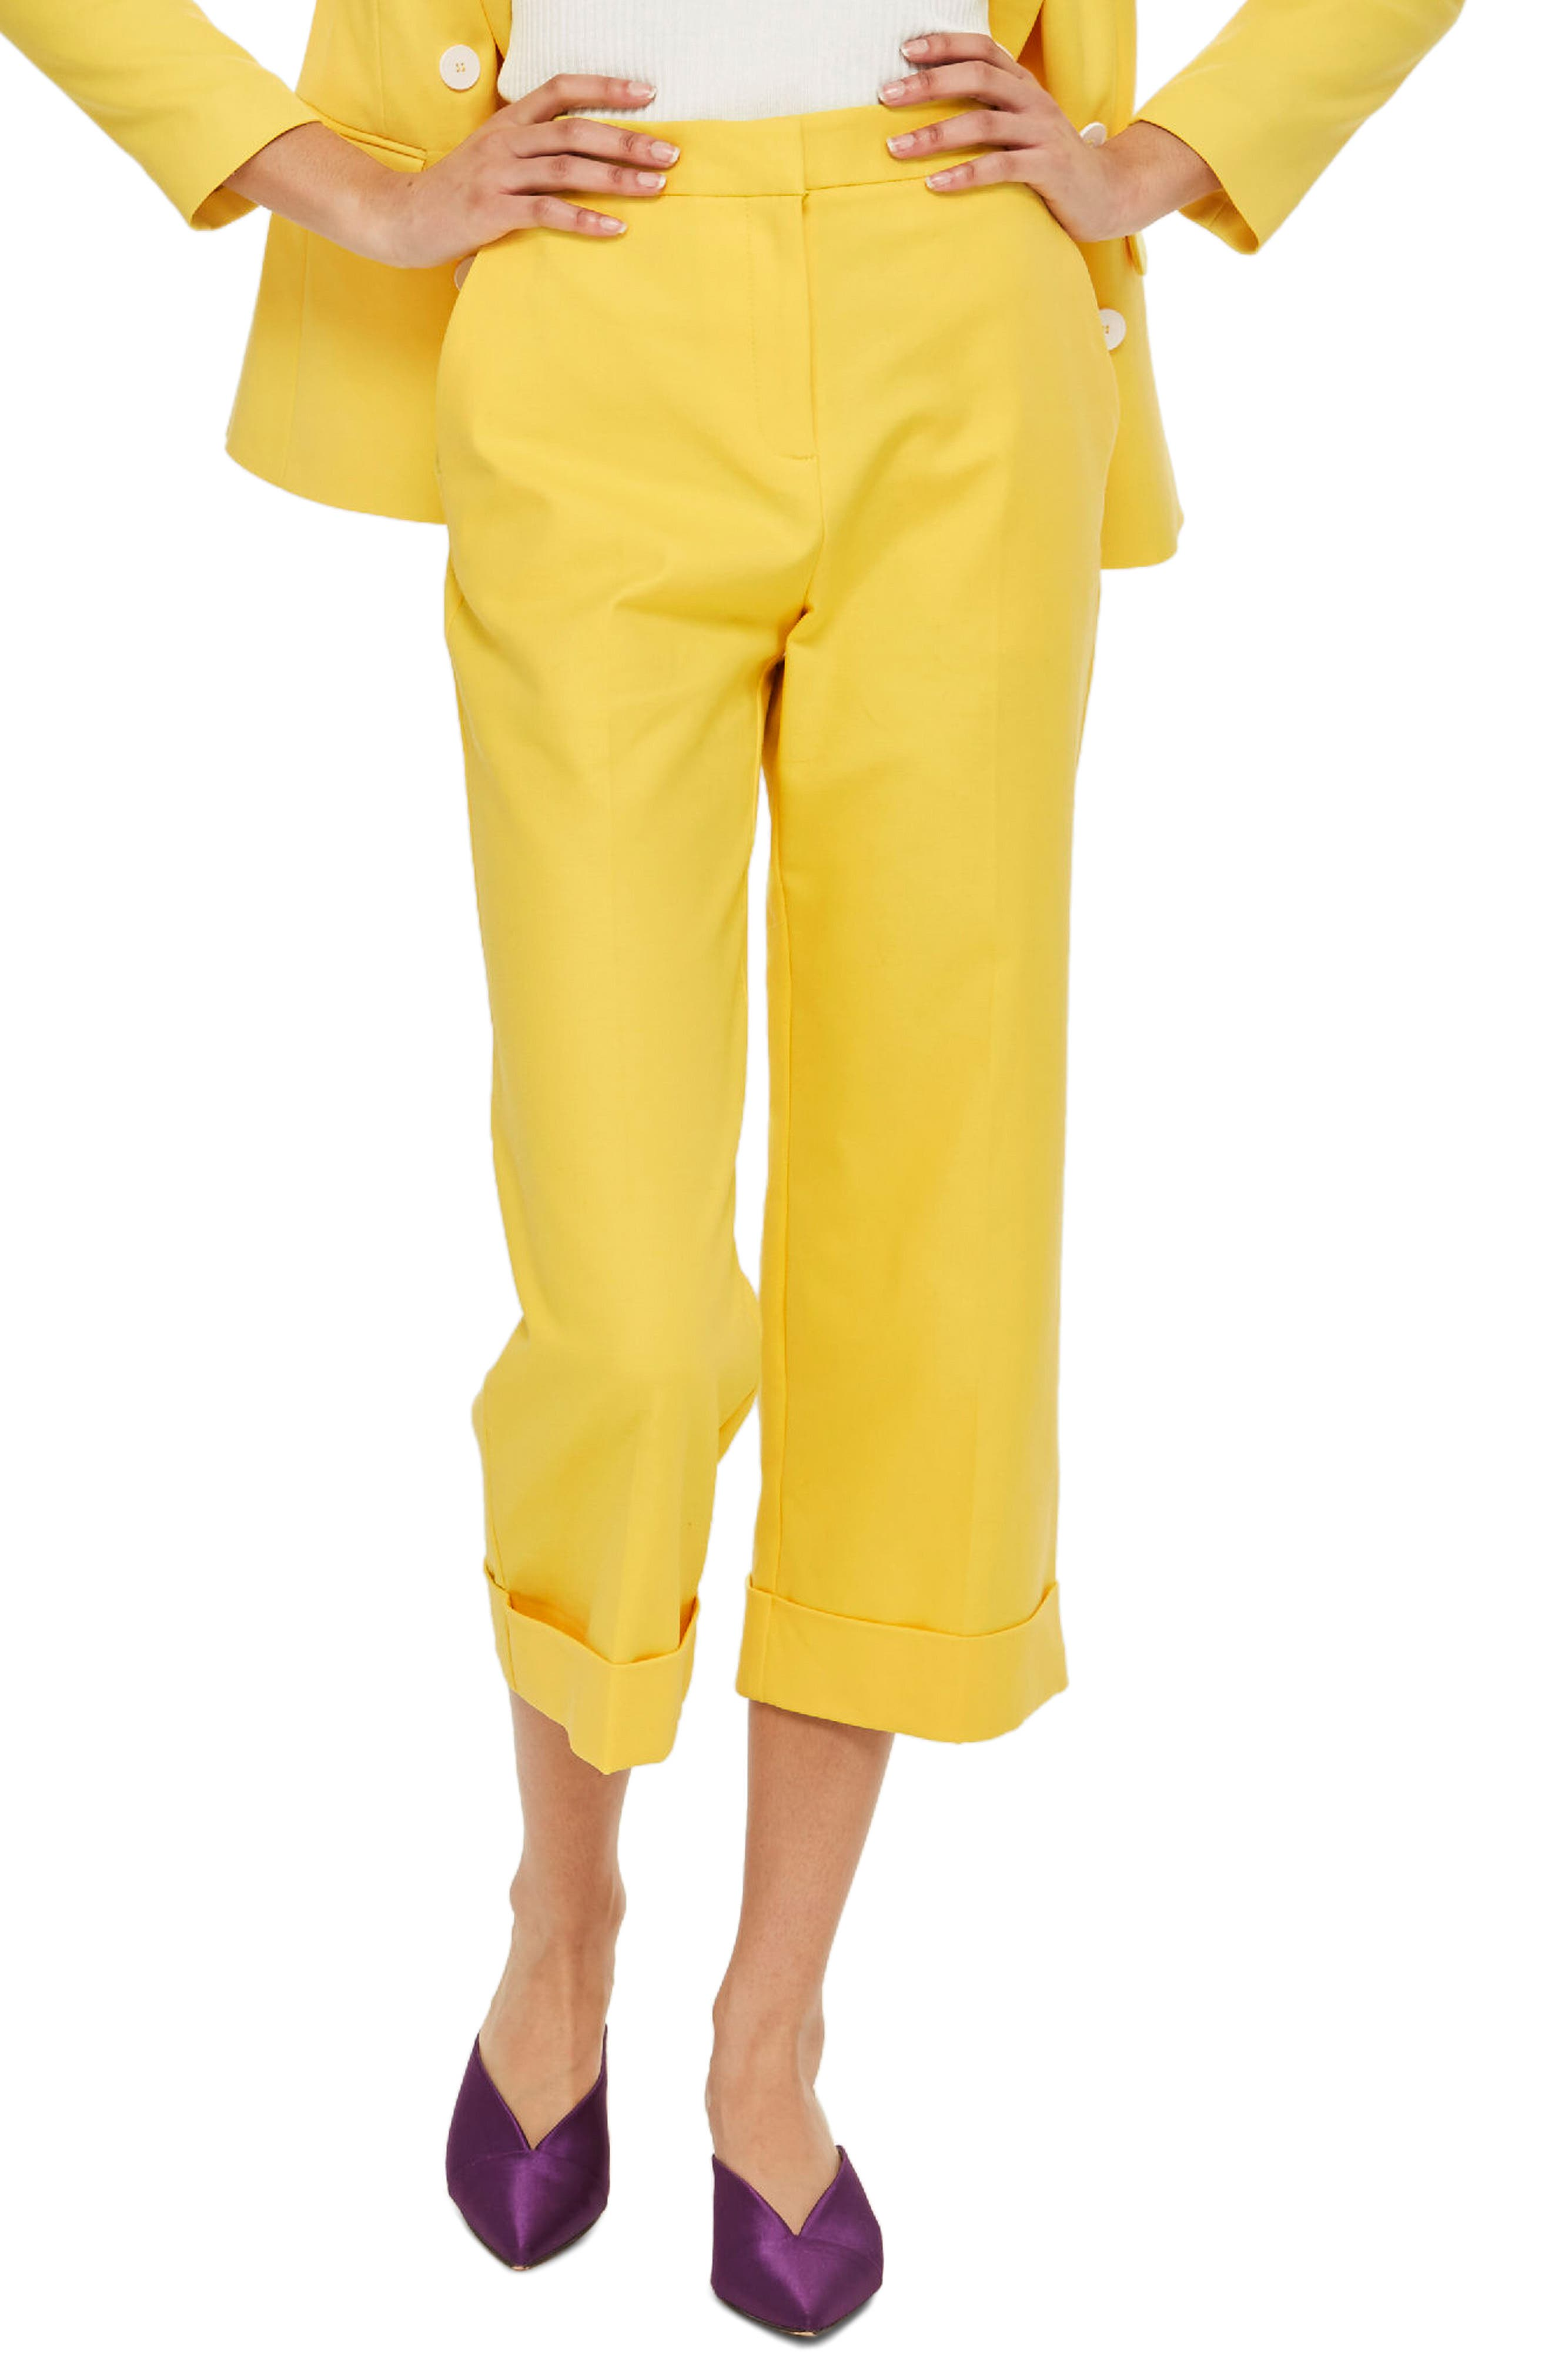 Milly Crop Suit Trousers,                             Main thumbnail 1, color,                             Yellow